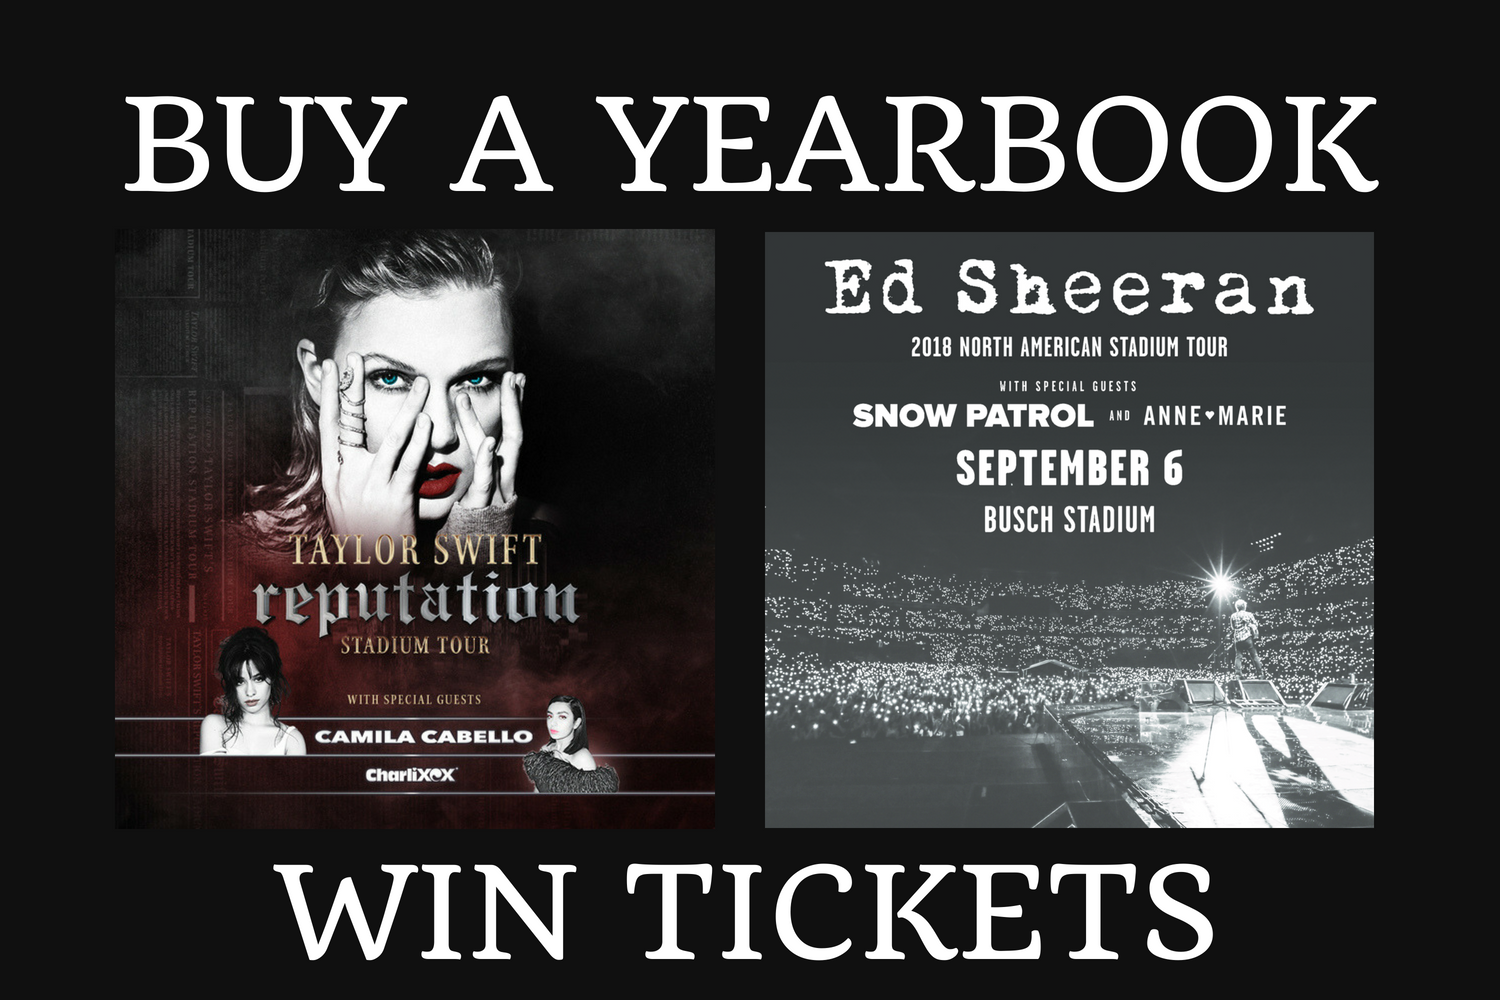 Purchase a yearbook or yearbook ad by Sept. 1 to be entered into a drawing to win two tickets to see either Ed Sheeran or Taylor Swift.